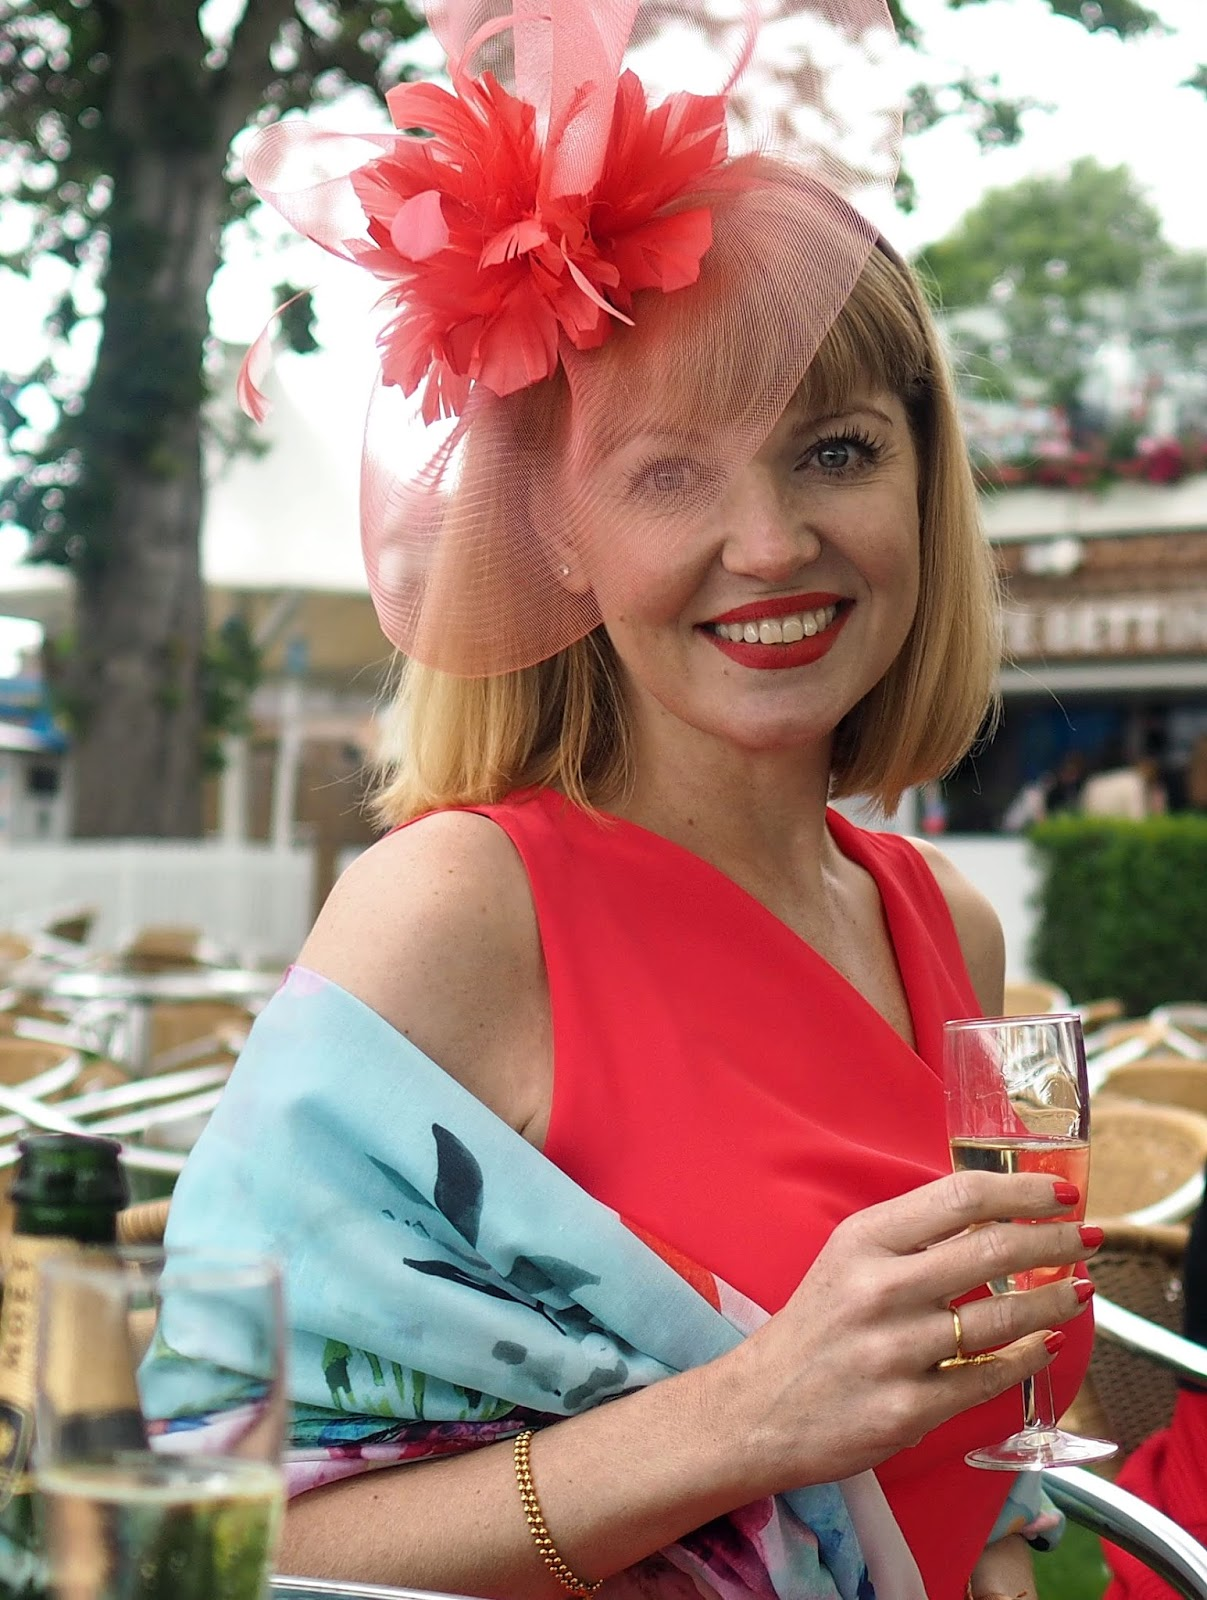 York Races. chiffon dress, fascinator and floral scarf